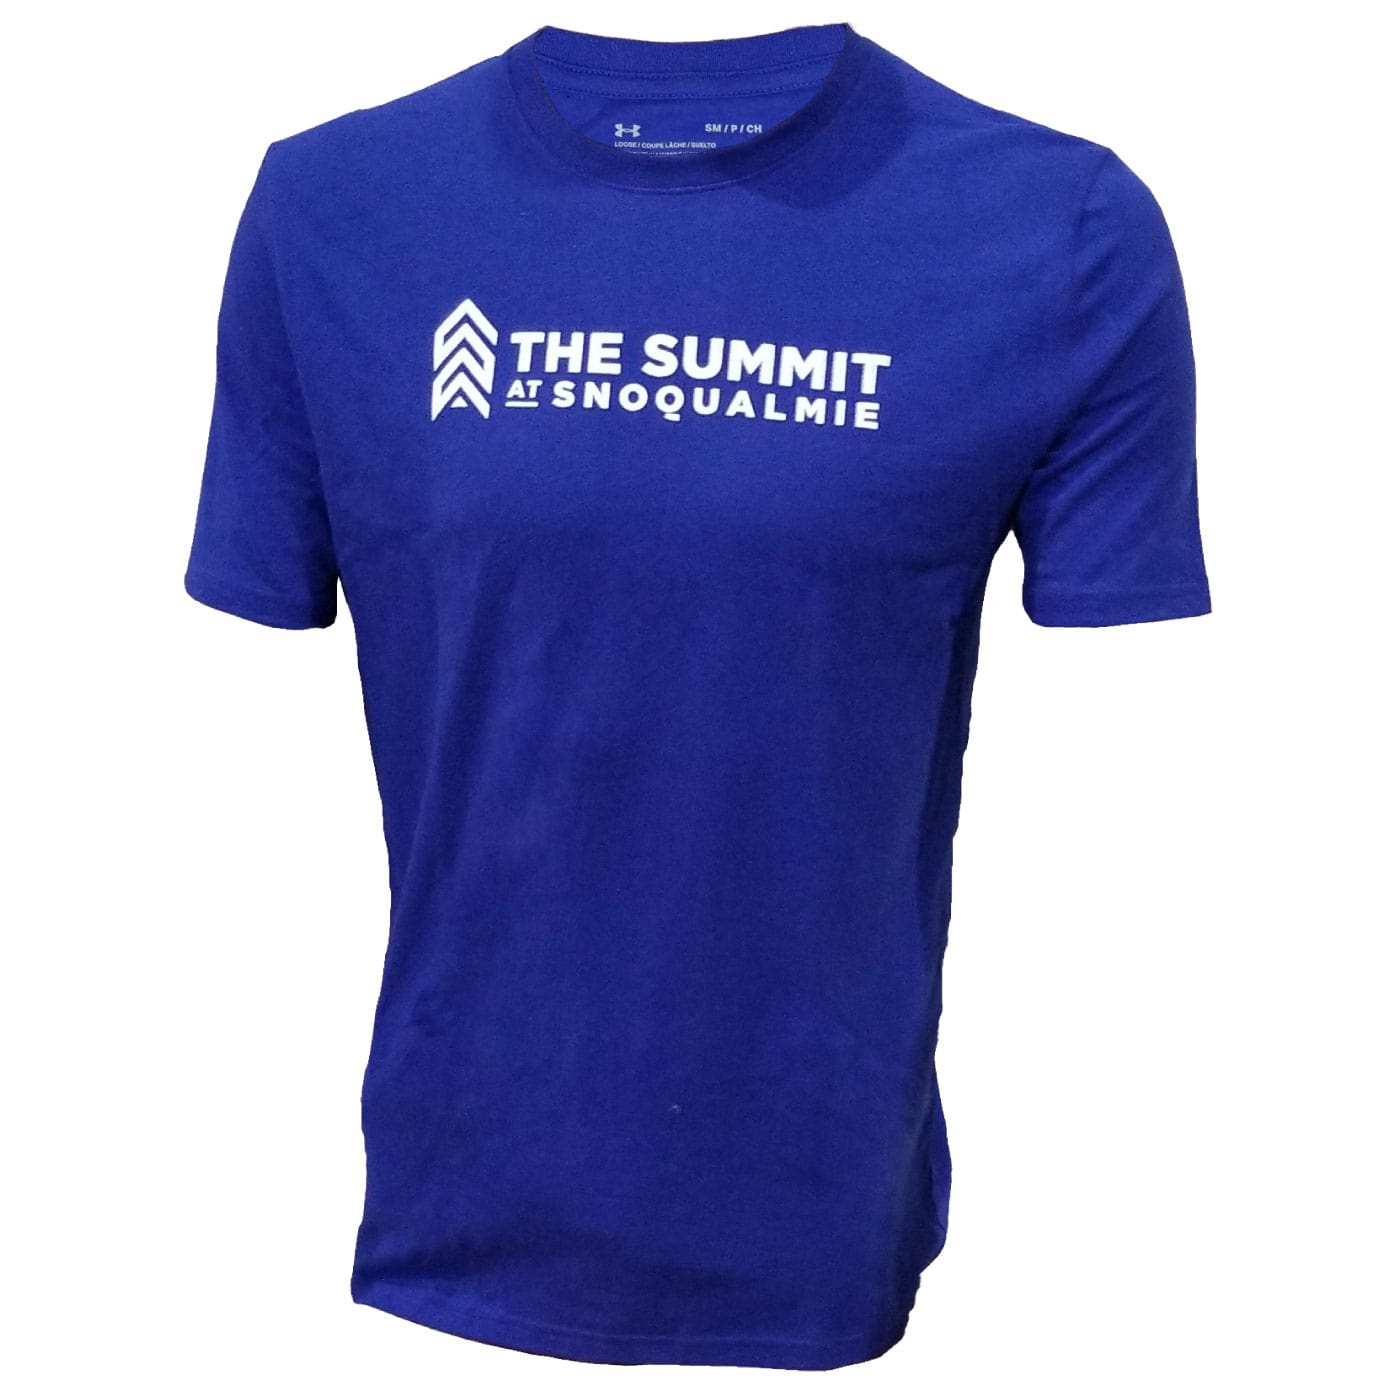 Men's Under Armour Summit at Snoqualmie Logo Tee